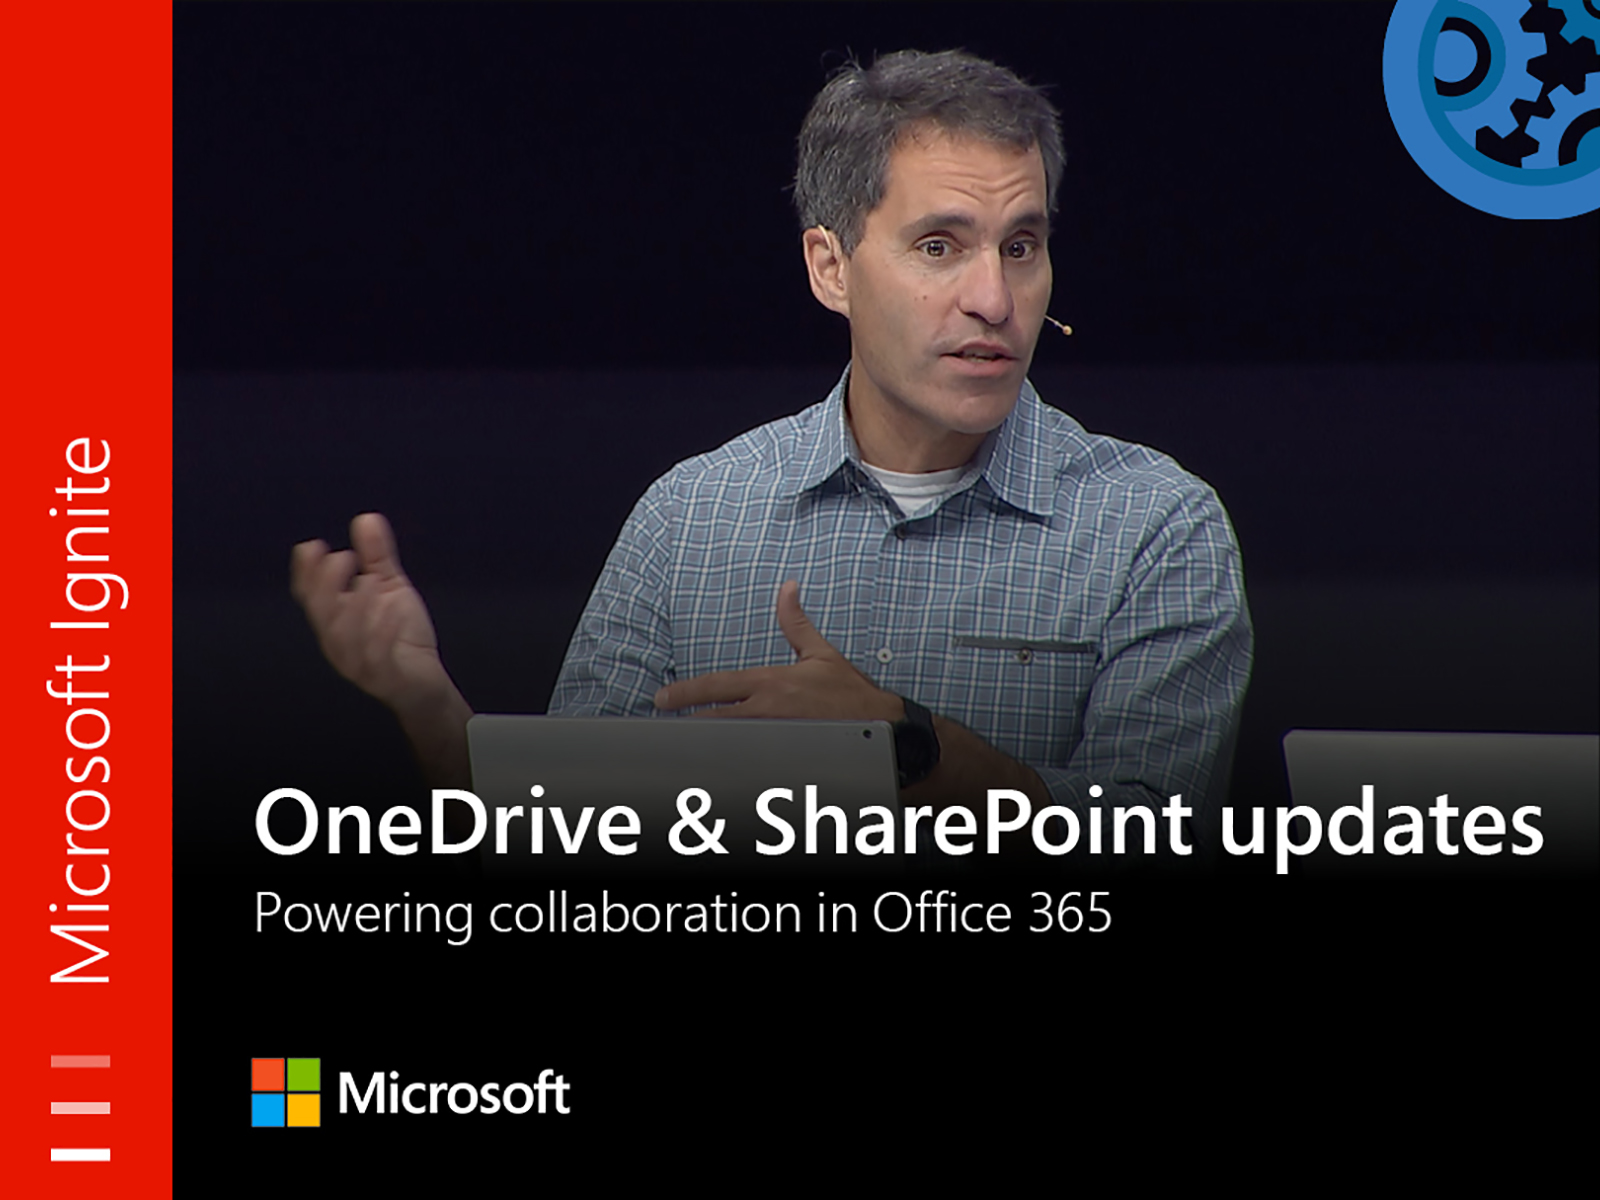 Artwork for OneDrive and SharePoint updates powering collaboration in Office 365 with CVP Jeff Teper